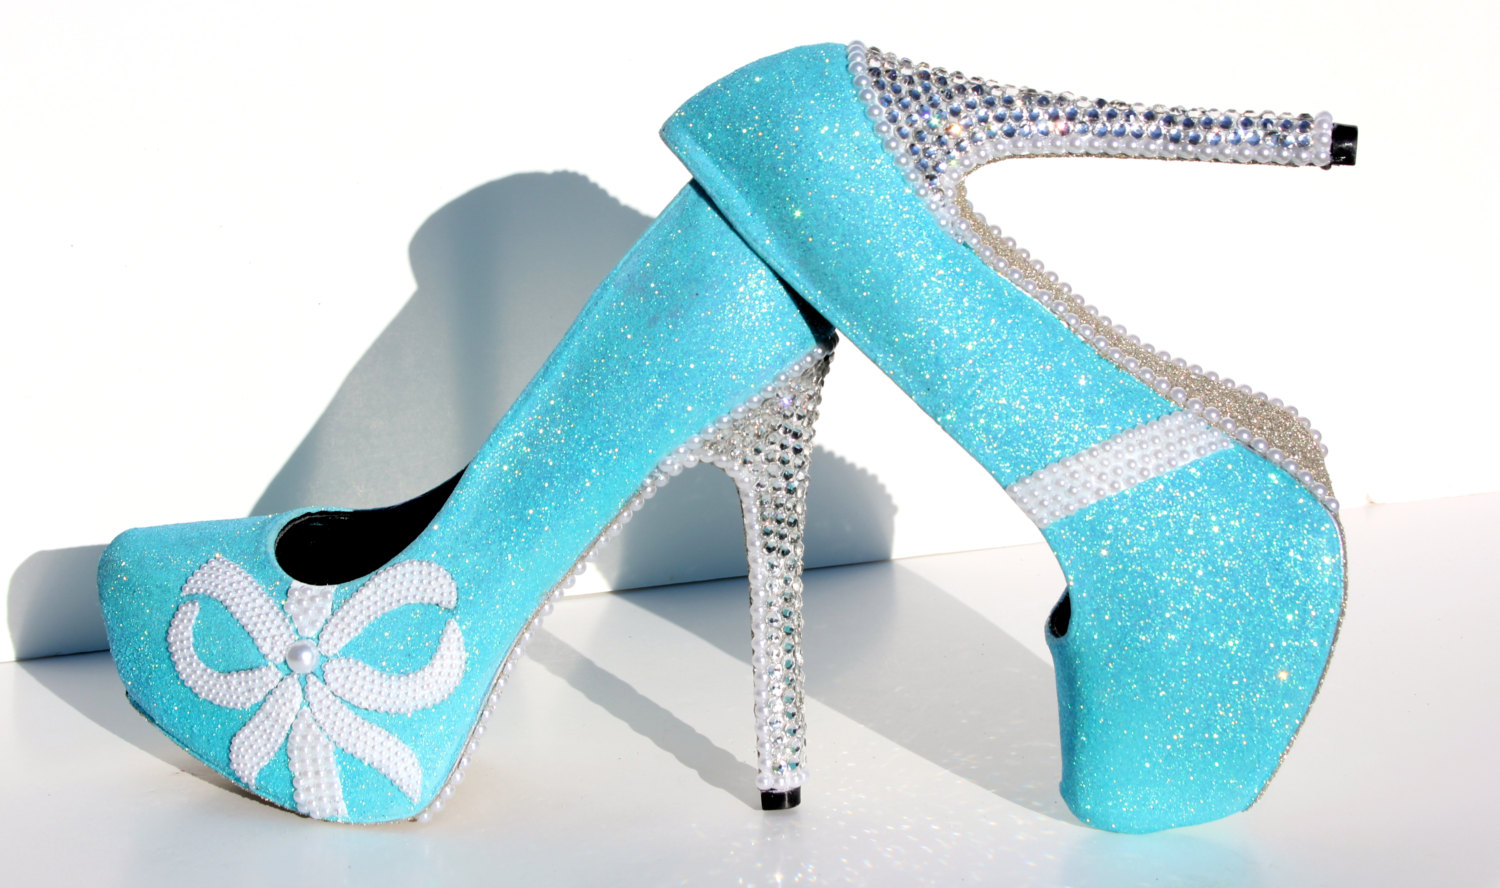 Tiffany blue glitter heels with swarovski crystals and pearls tiffany blue glitter heels with swarovski crystals and pearls thumbnail 4 junglespirit Image collections